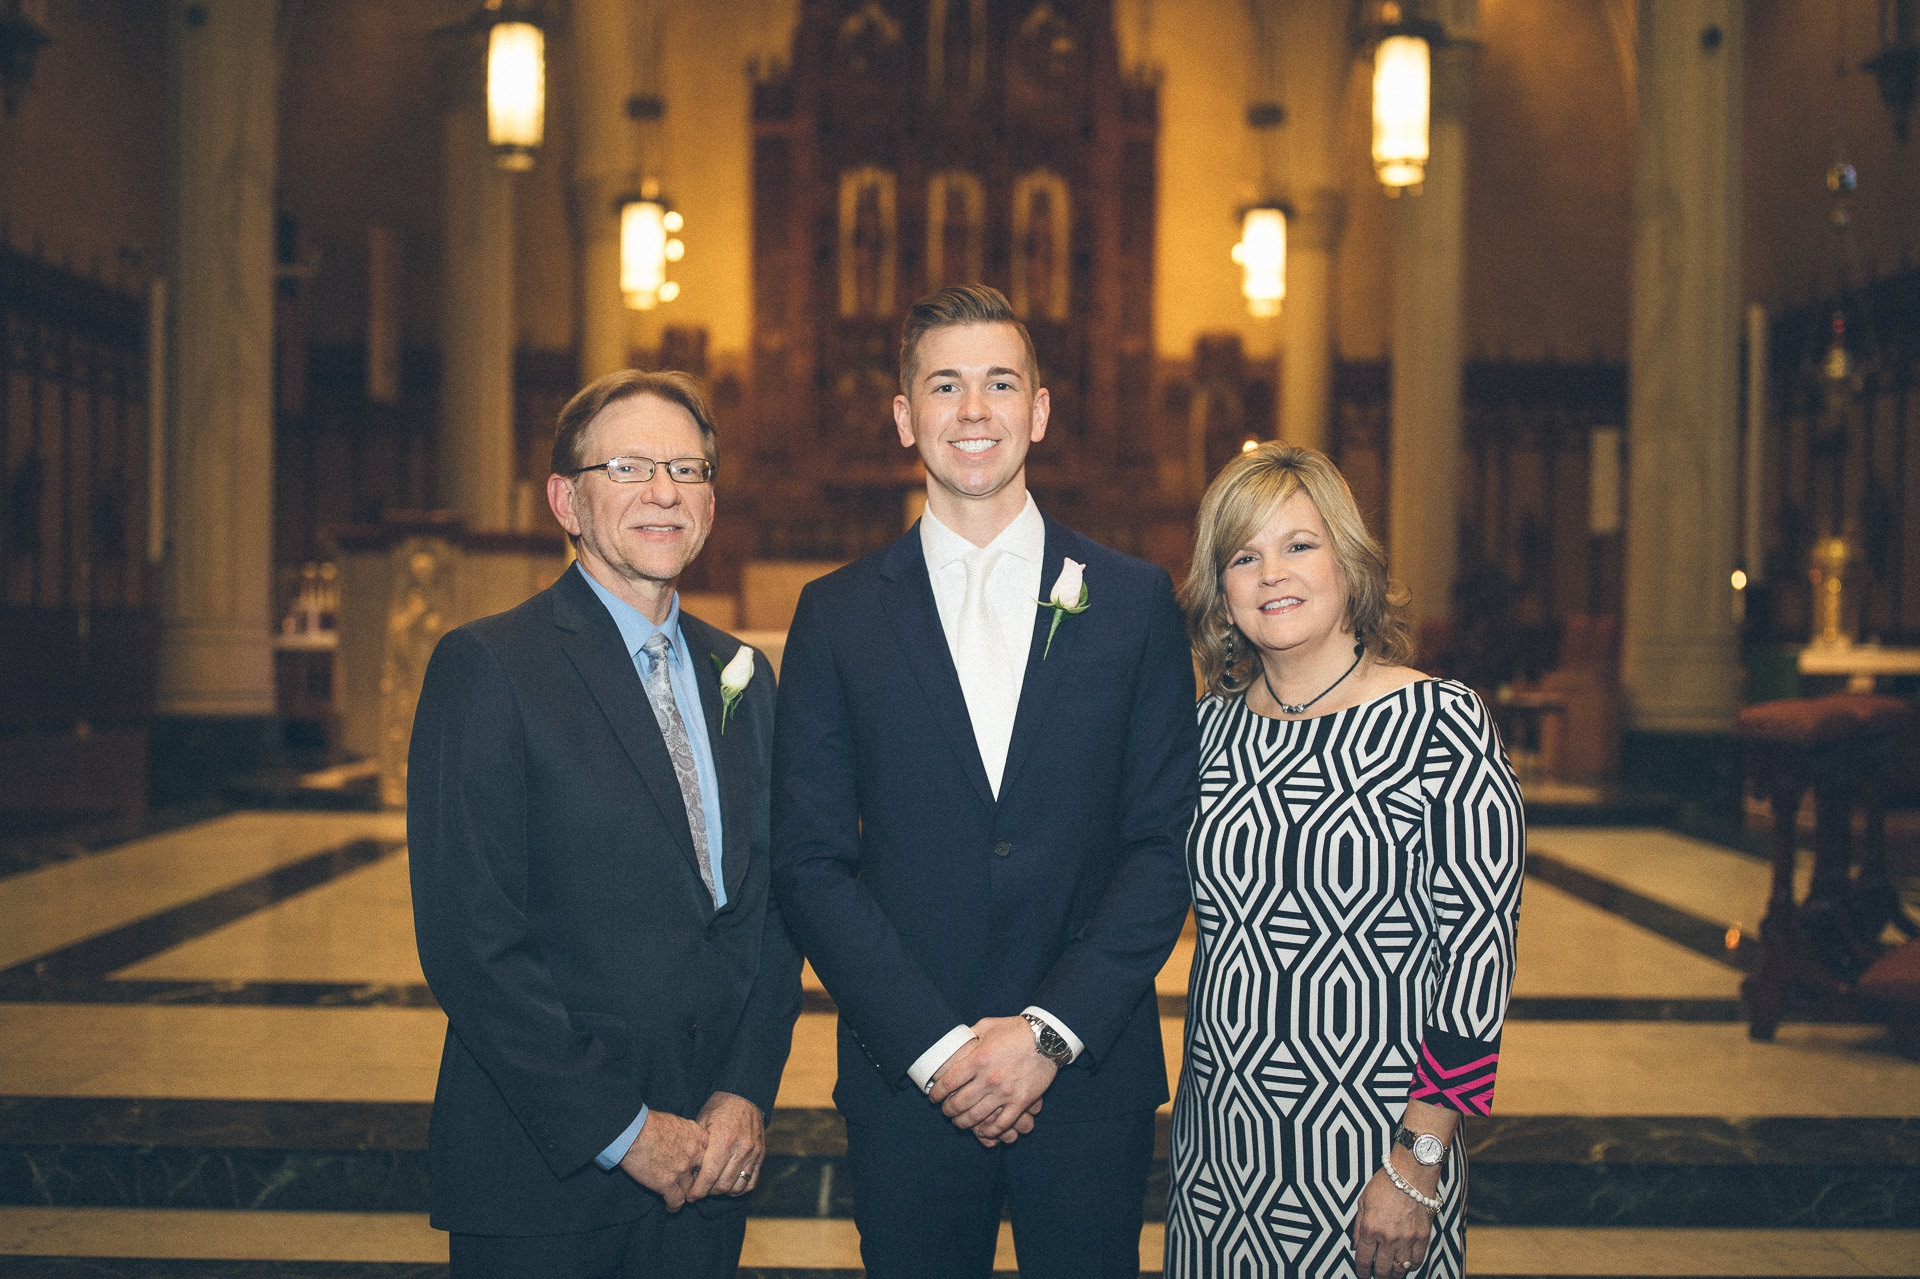 Cathedral of St John Wedding Photographers in Cleveland 5.jpg